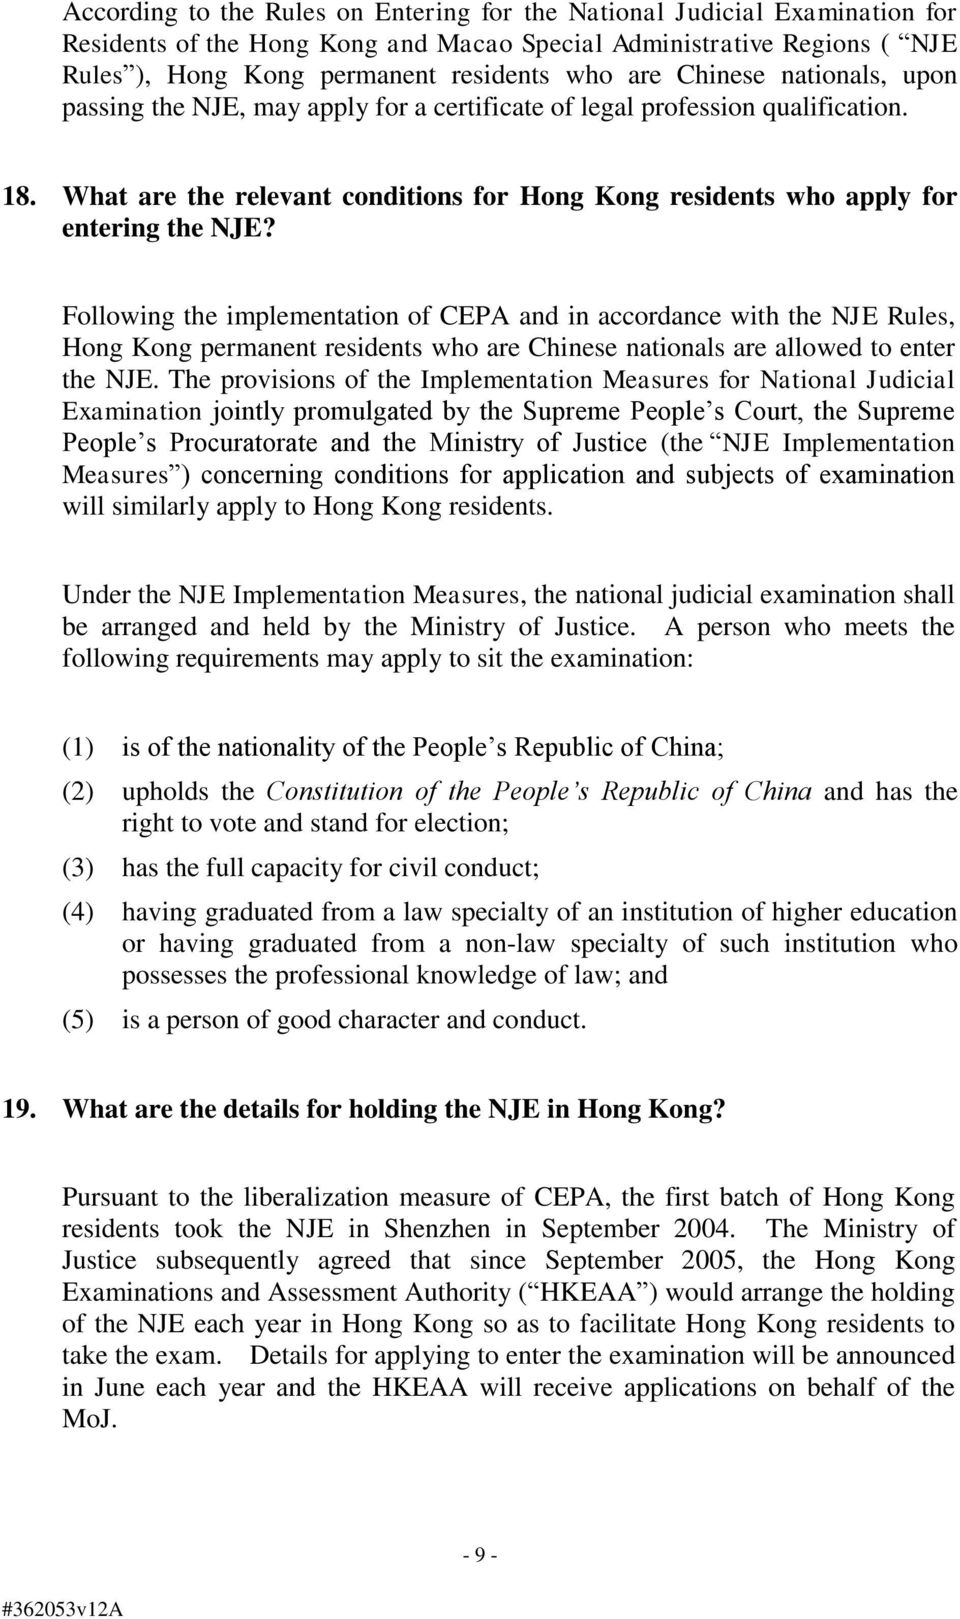 Following the implementation of CEPA and in accordance with the NJE Rules, Hong Kong permanent residents who are Chinese nationals are allowed to enter the NJE.